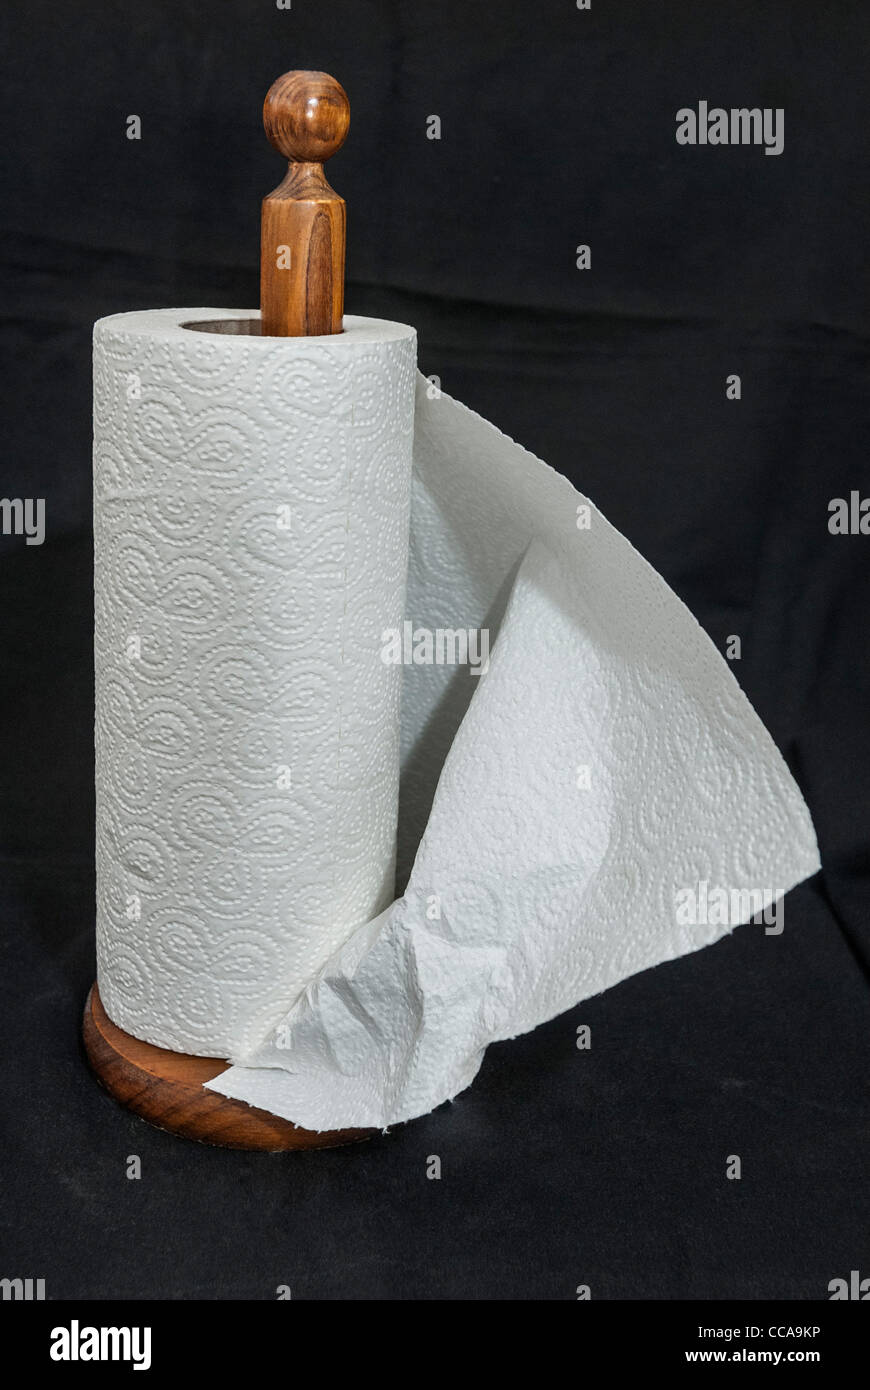 A roll of kitchen absorbent paper on a wooden holder. Stock Photo